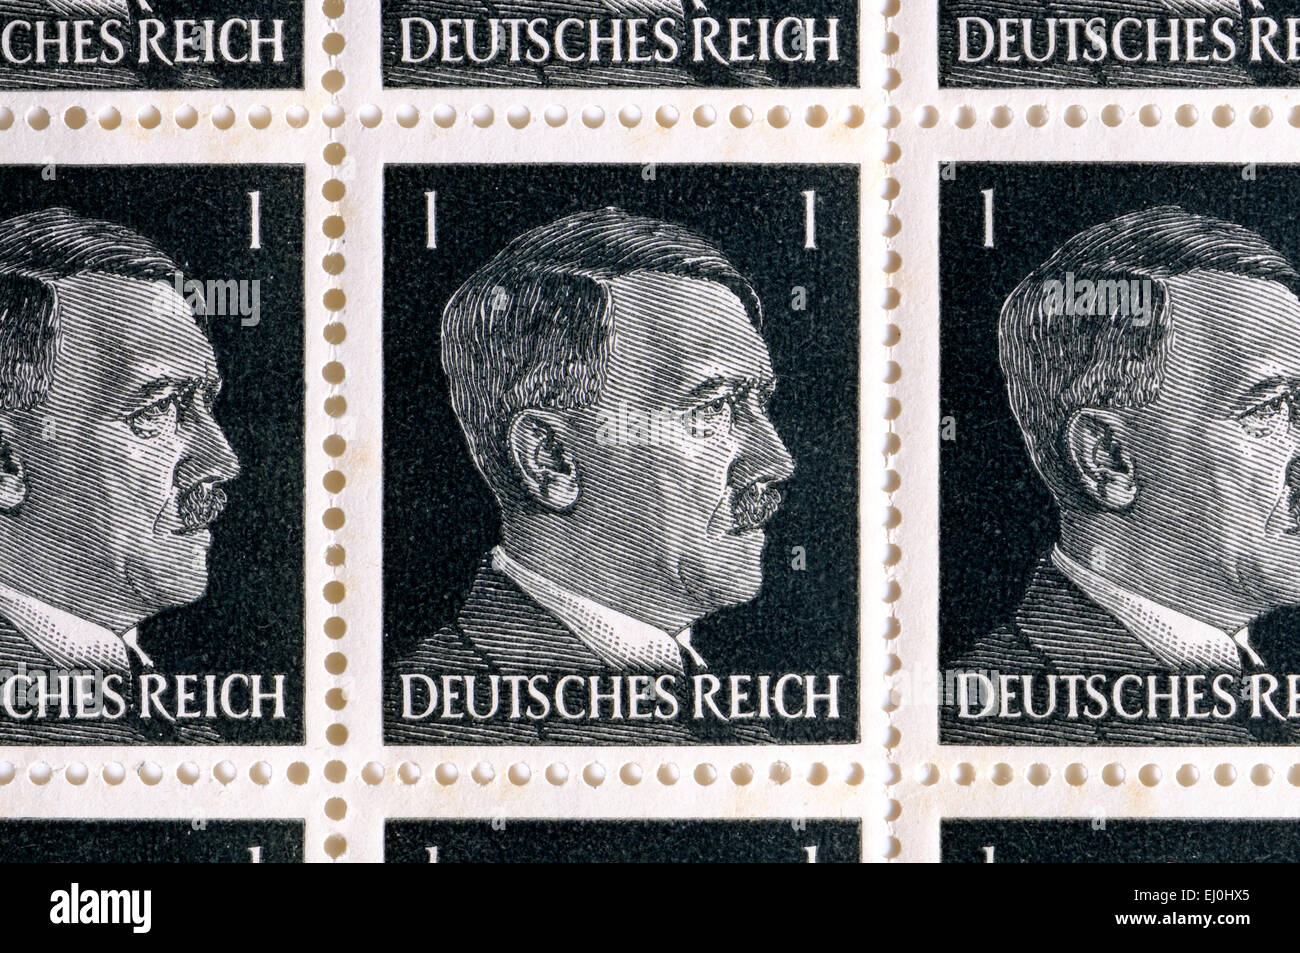 German 1pf stamps of the Deutsches Reich showing Hitler's portrait - Stock Image